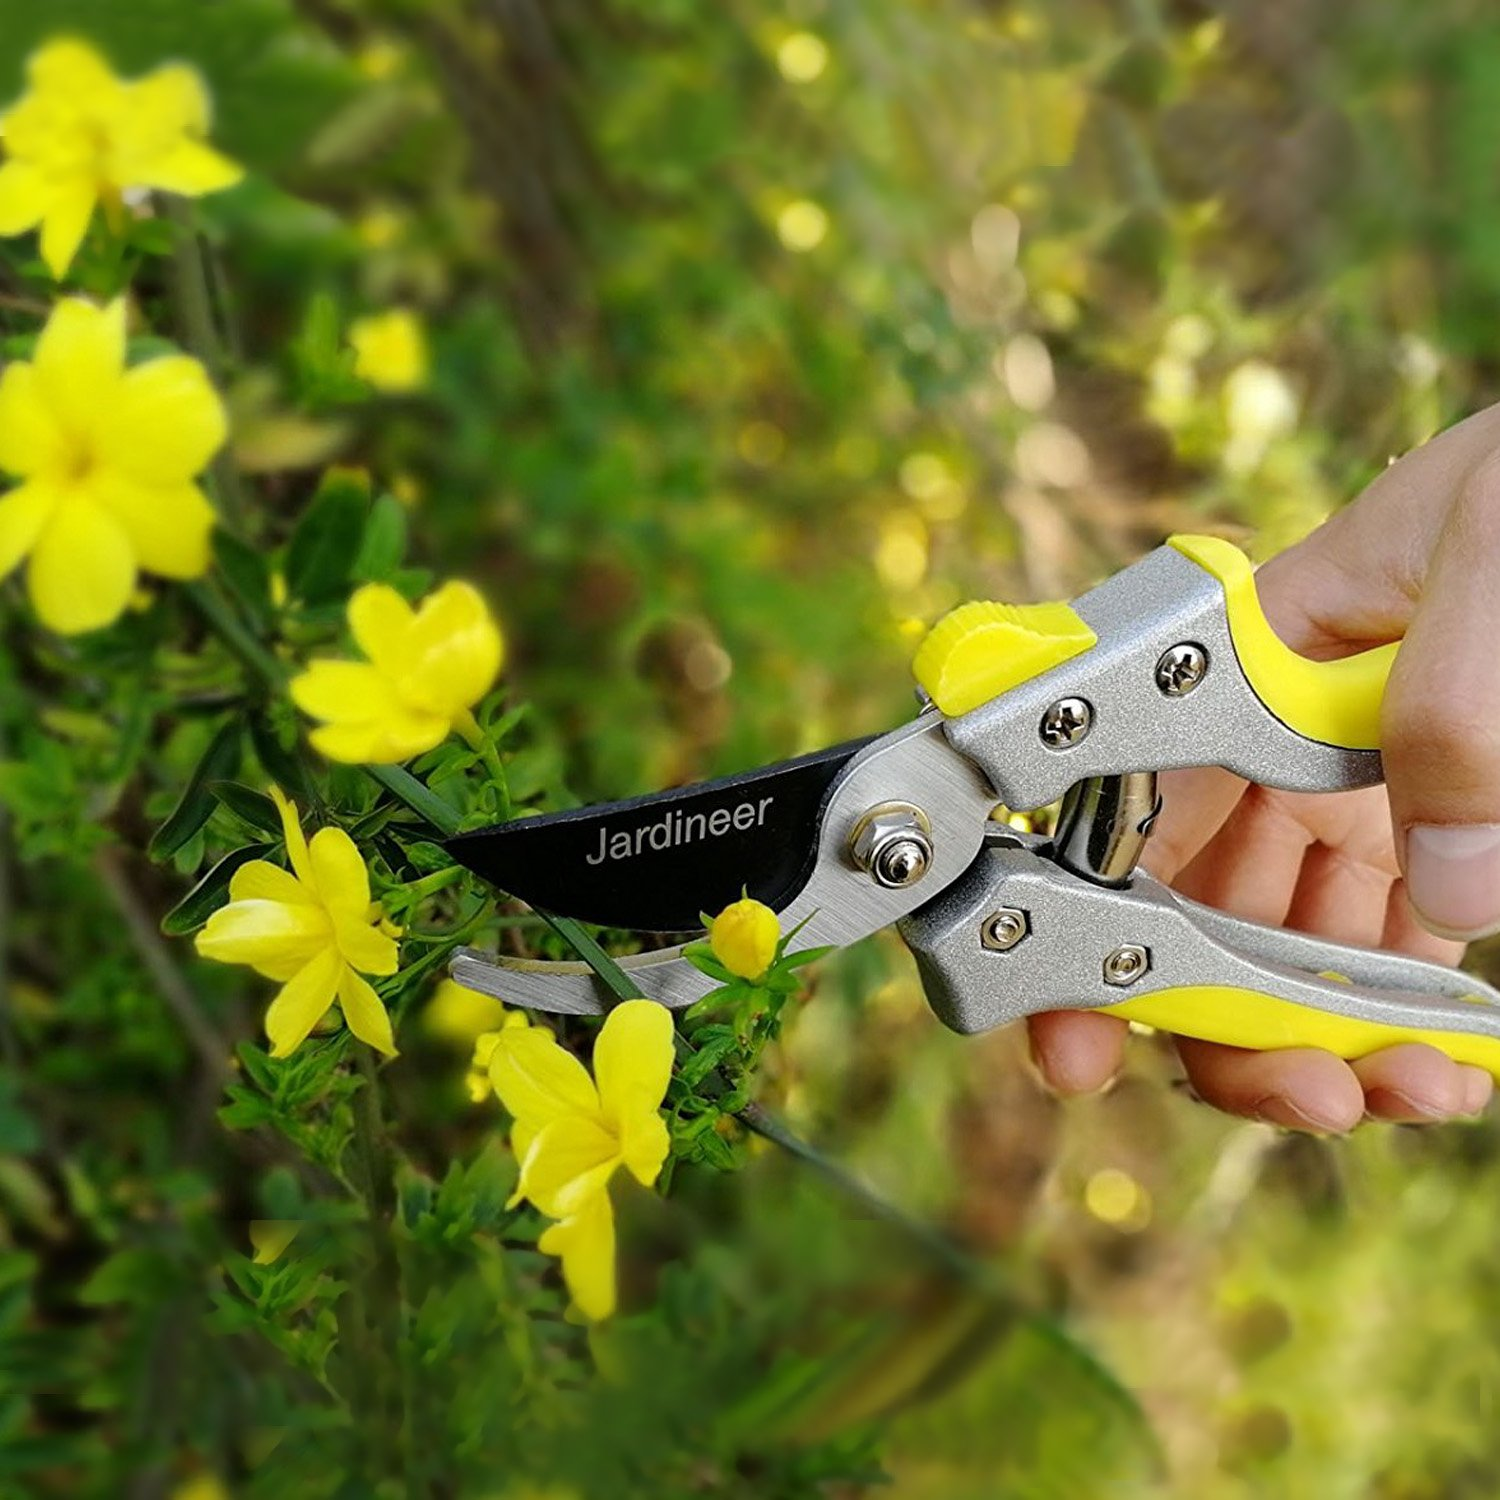 Jardineer Sharp and Durable Hand Bypass Pruners with Safety Lock, Tree Trimmers Secateurs, Garden Pruning Shears for Live Green Plants, Perfect Garden Clippers by Jardineer (Image #5)